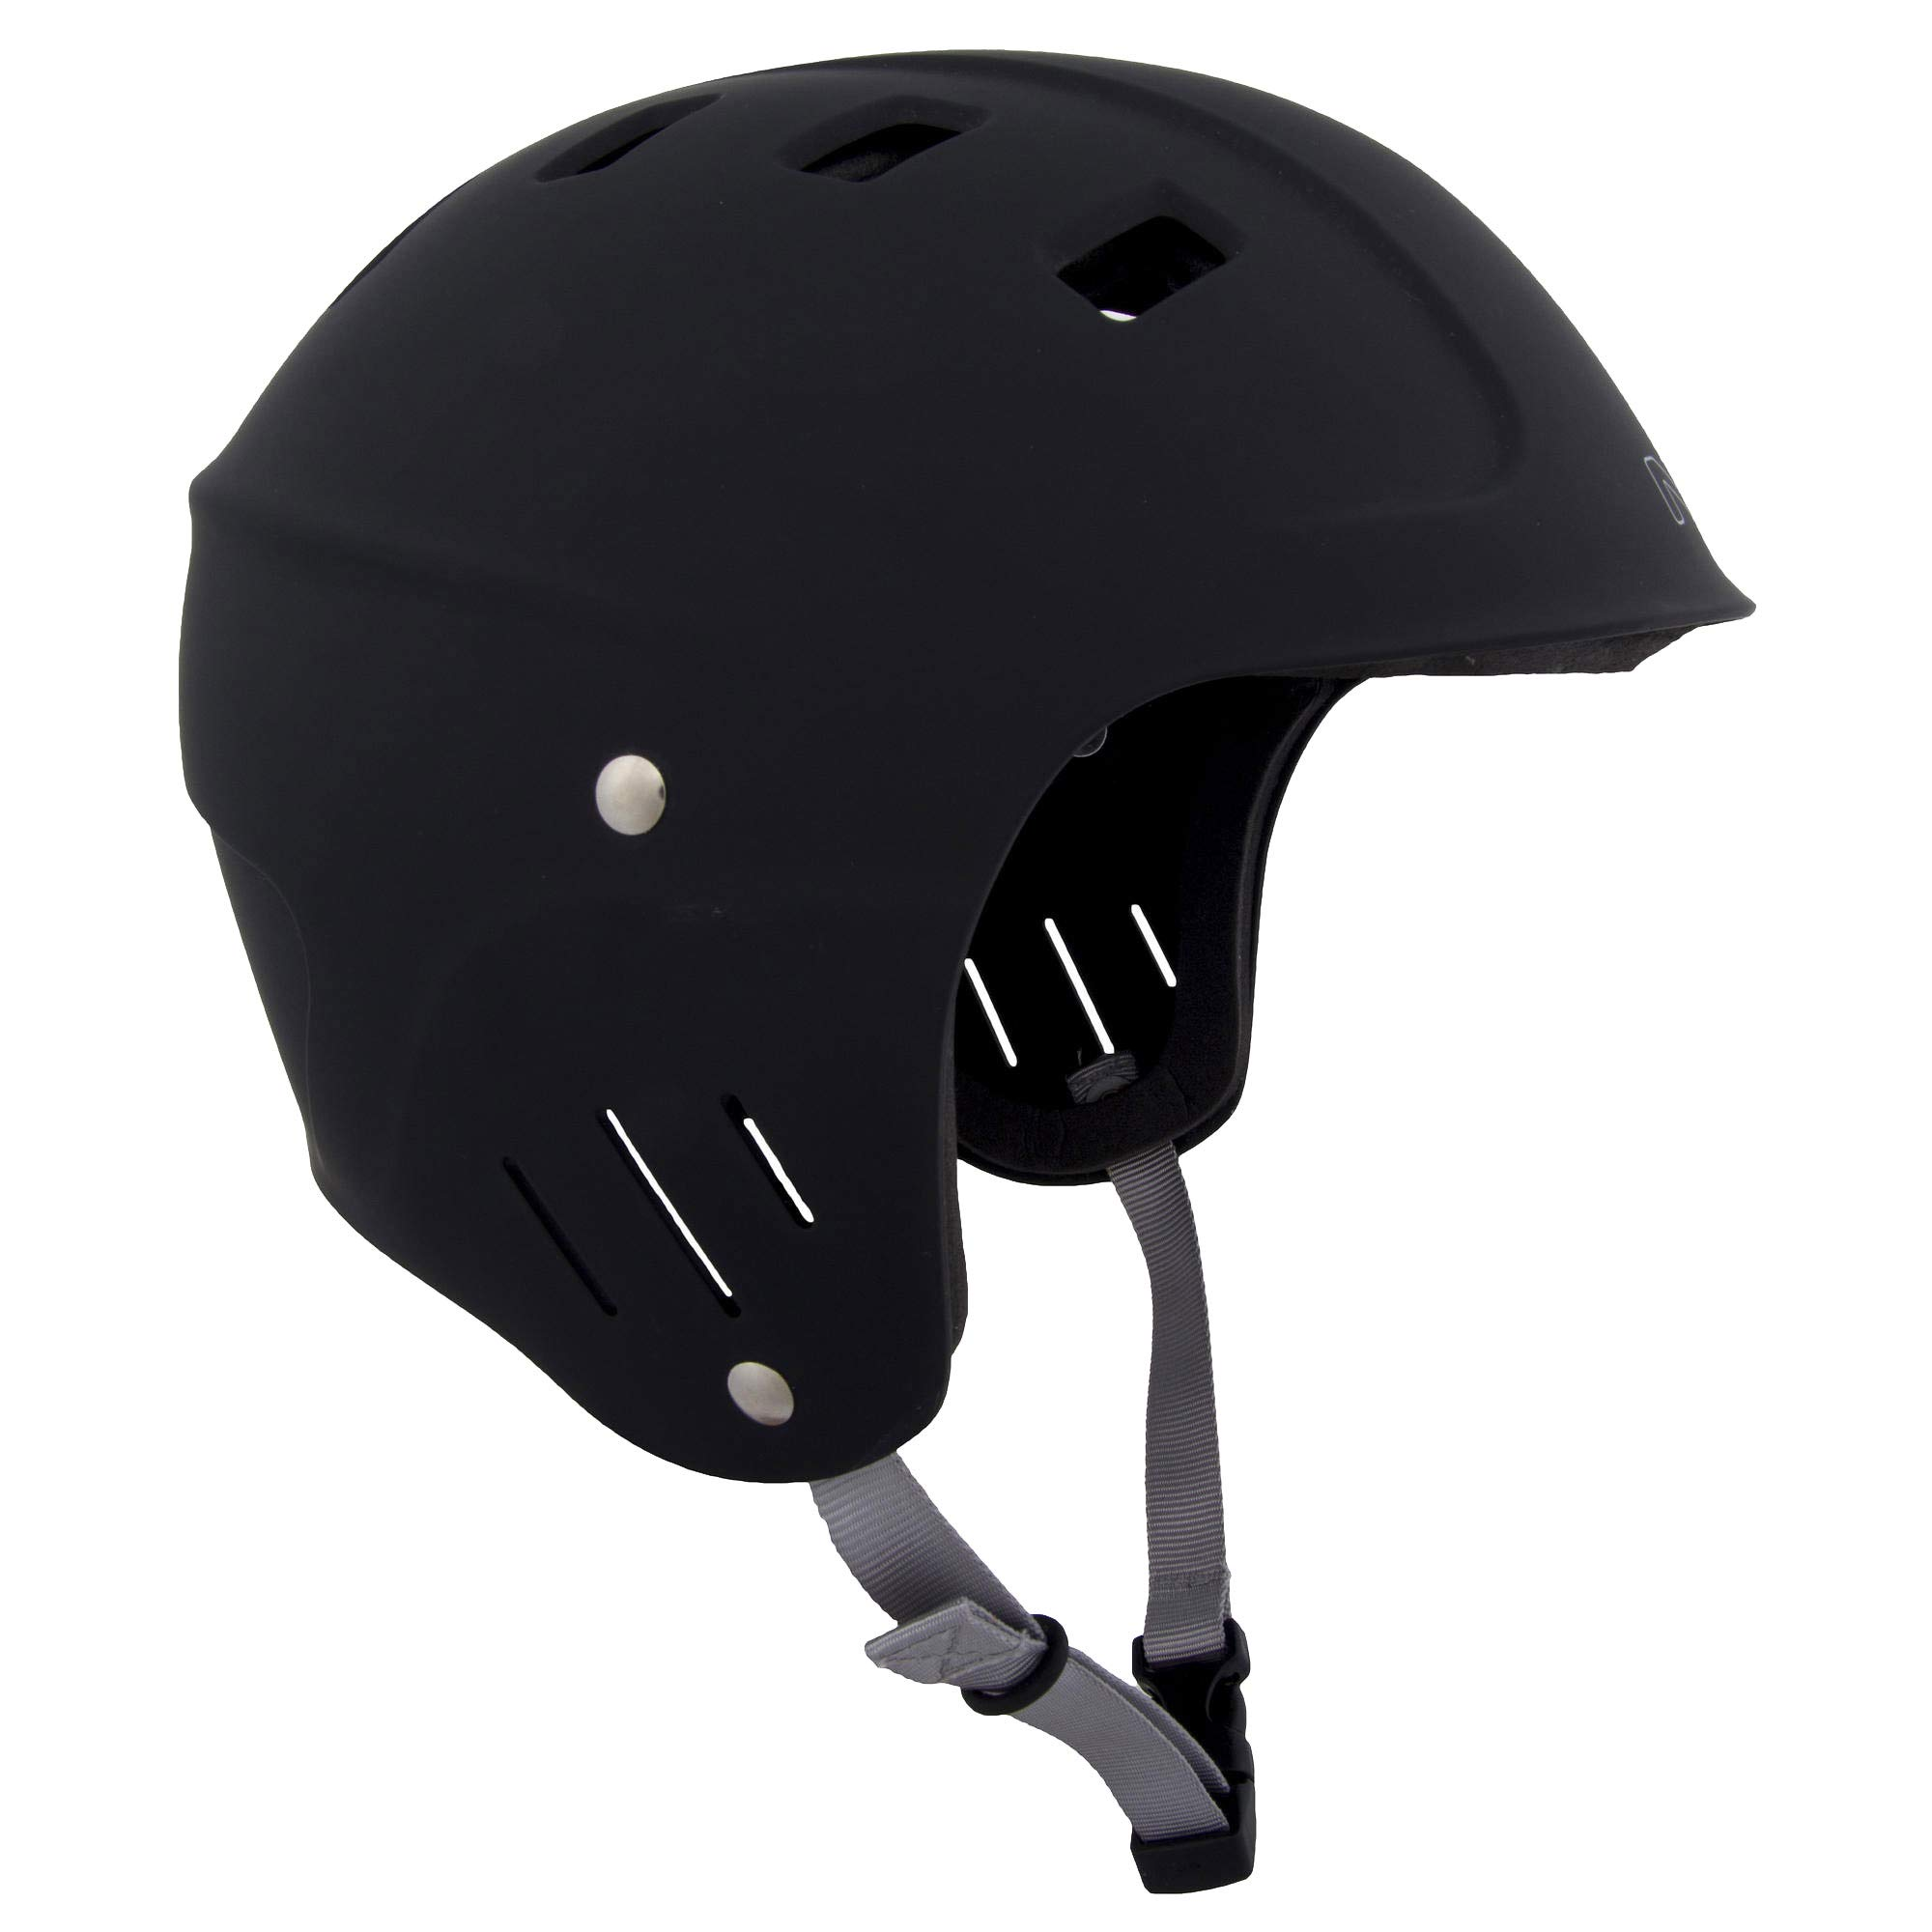 NRS Chaos Helmet - Full Cut Black Medium by NRS